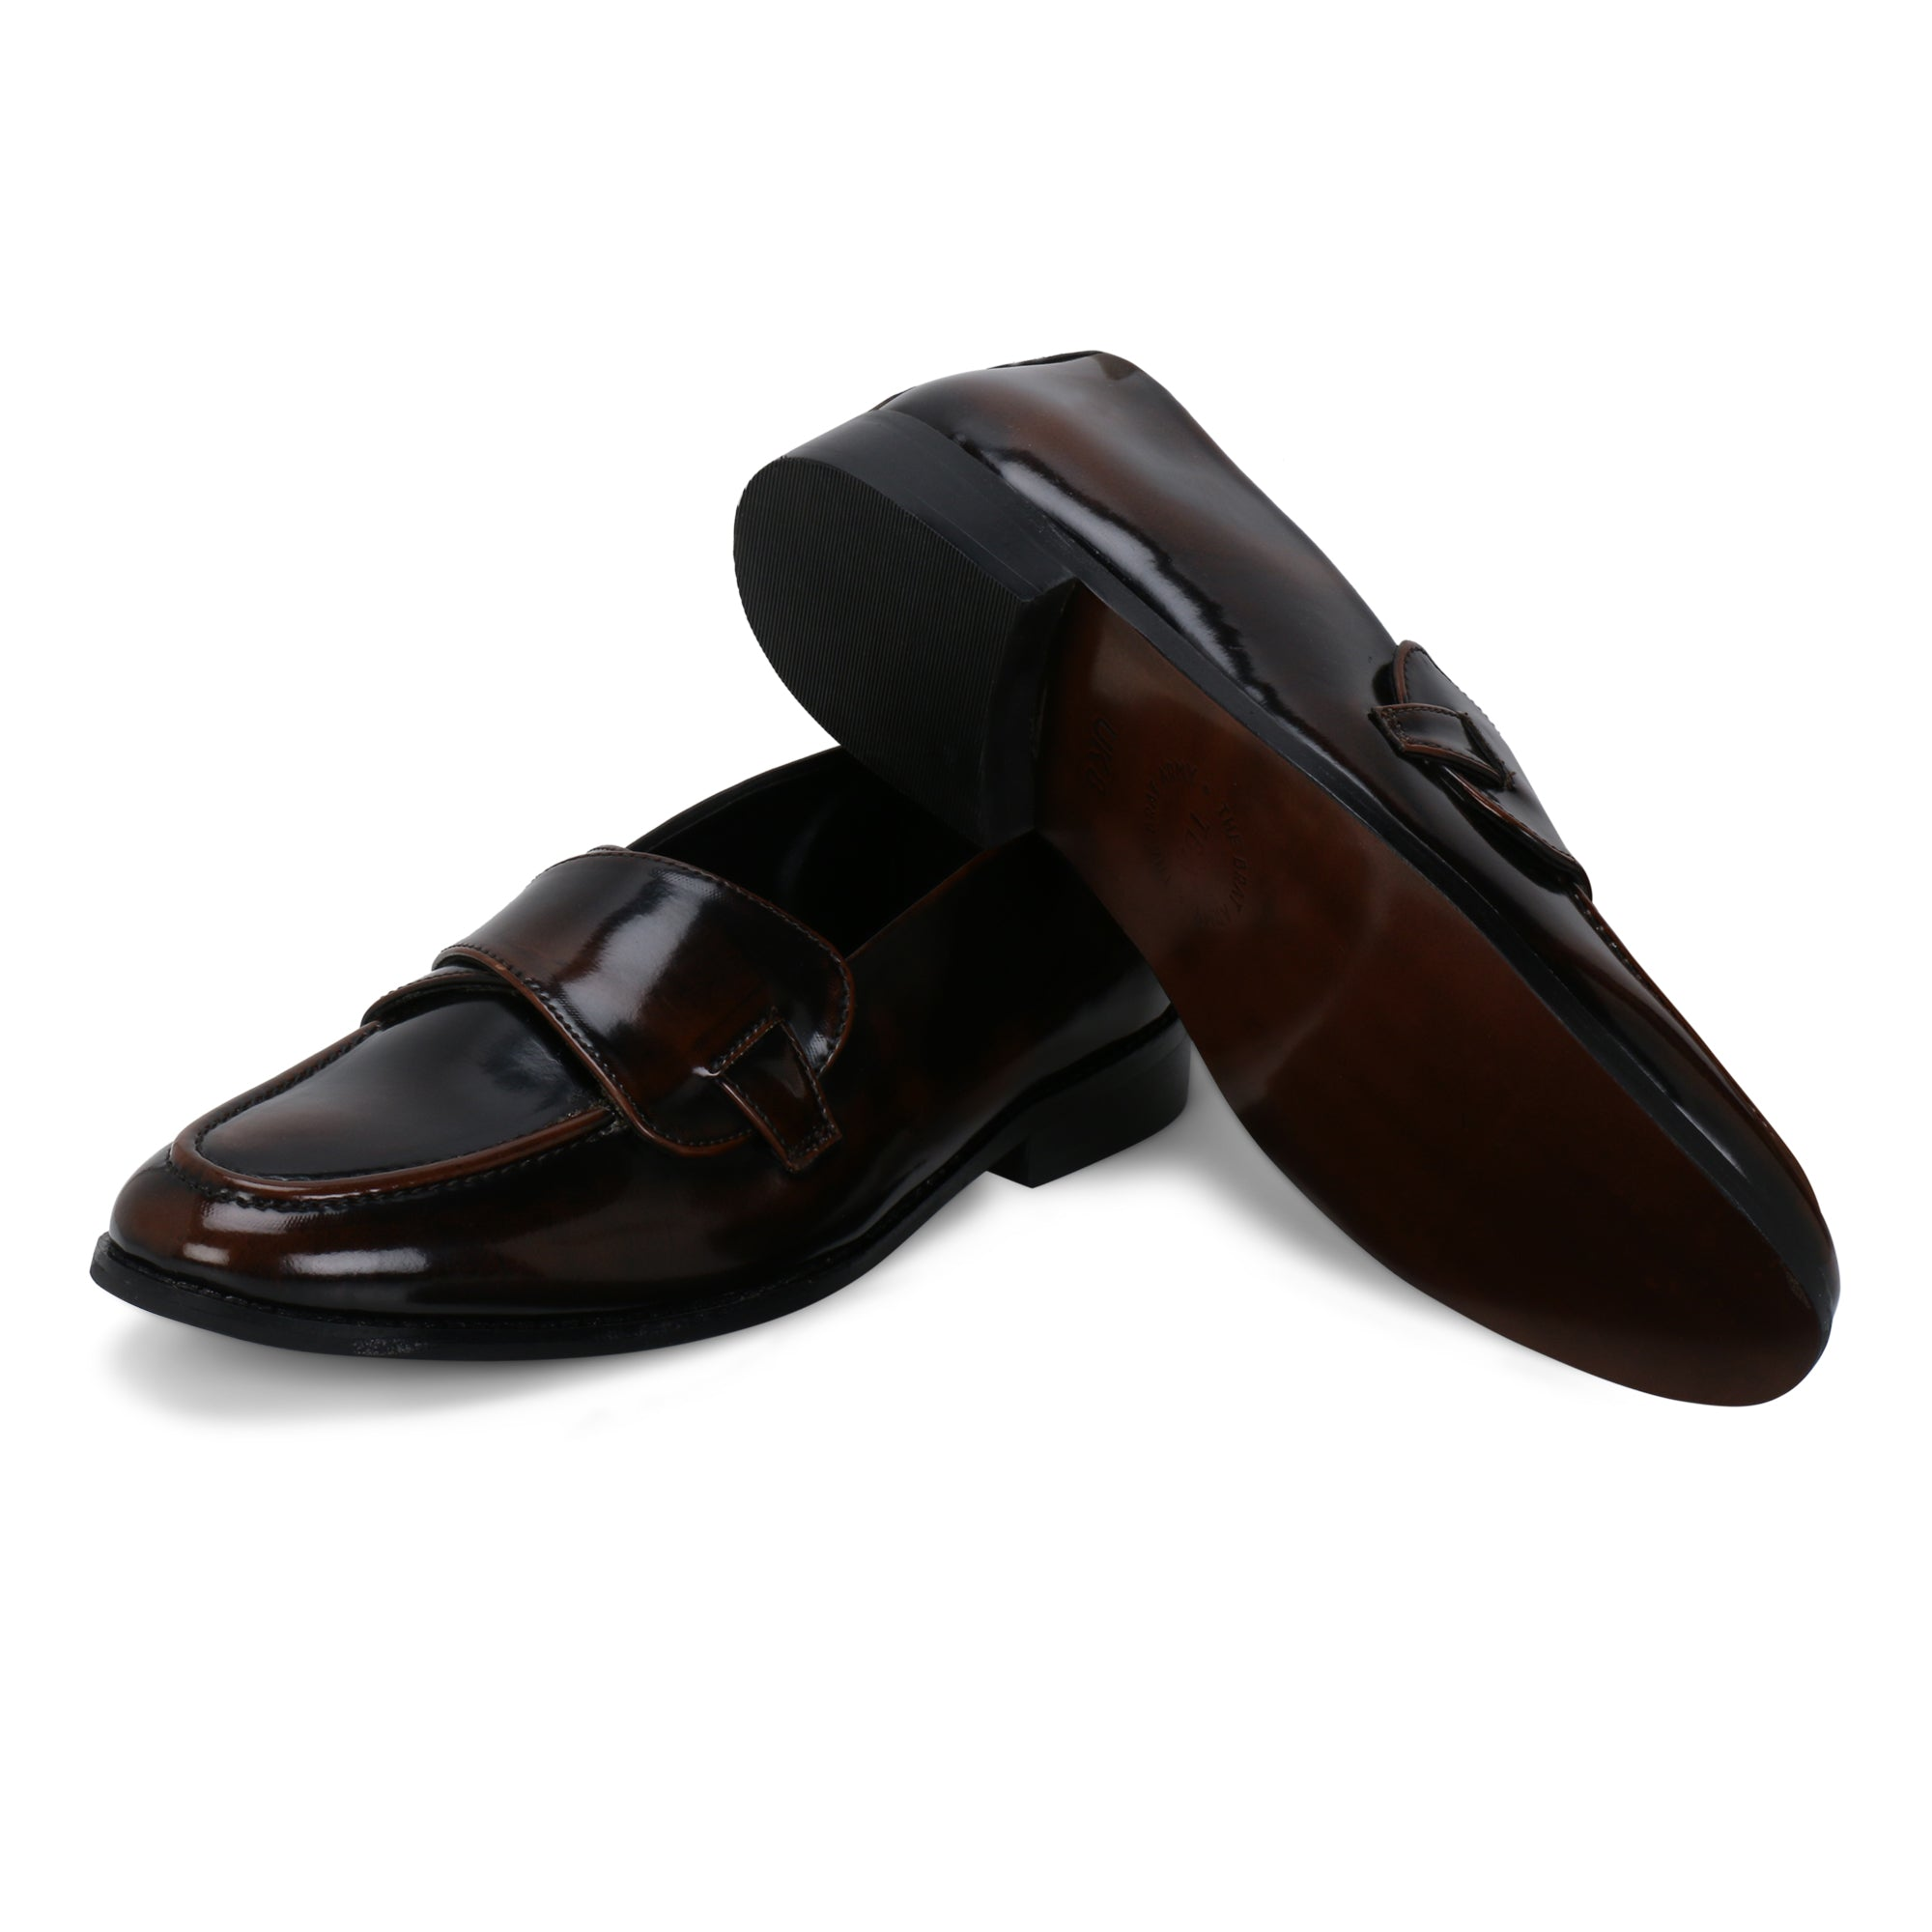 COLUMBUS BLACK TAN BRUSH OFF BUTTERFLY LOAFER